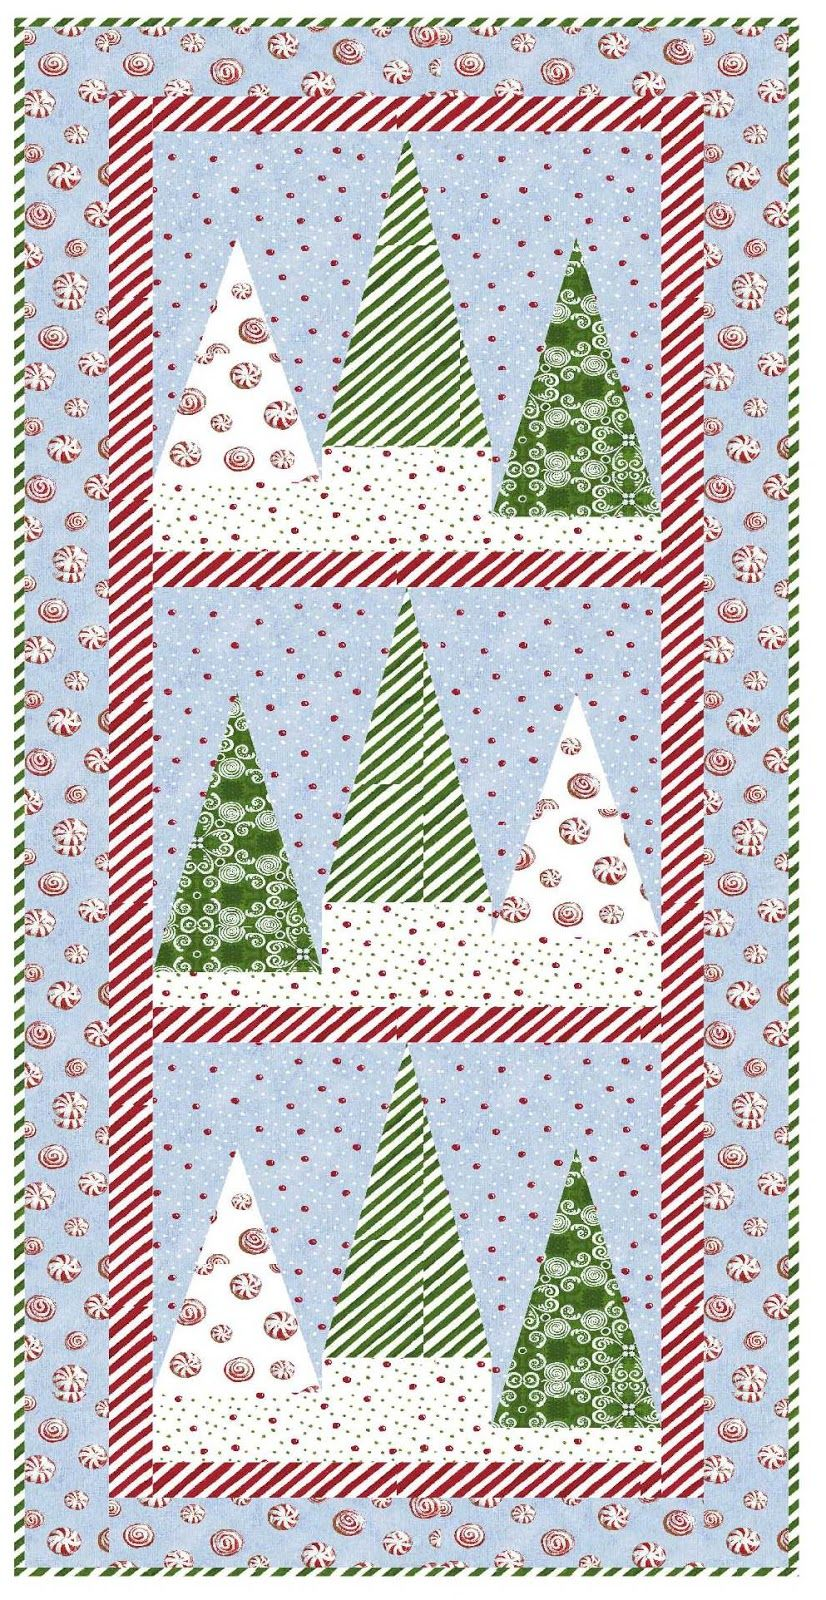 Quilt Inspiration: Free pattern day: Christmas 2015 (part 1 ... : quilt inspiration free patterns - Adamdwight.com